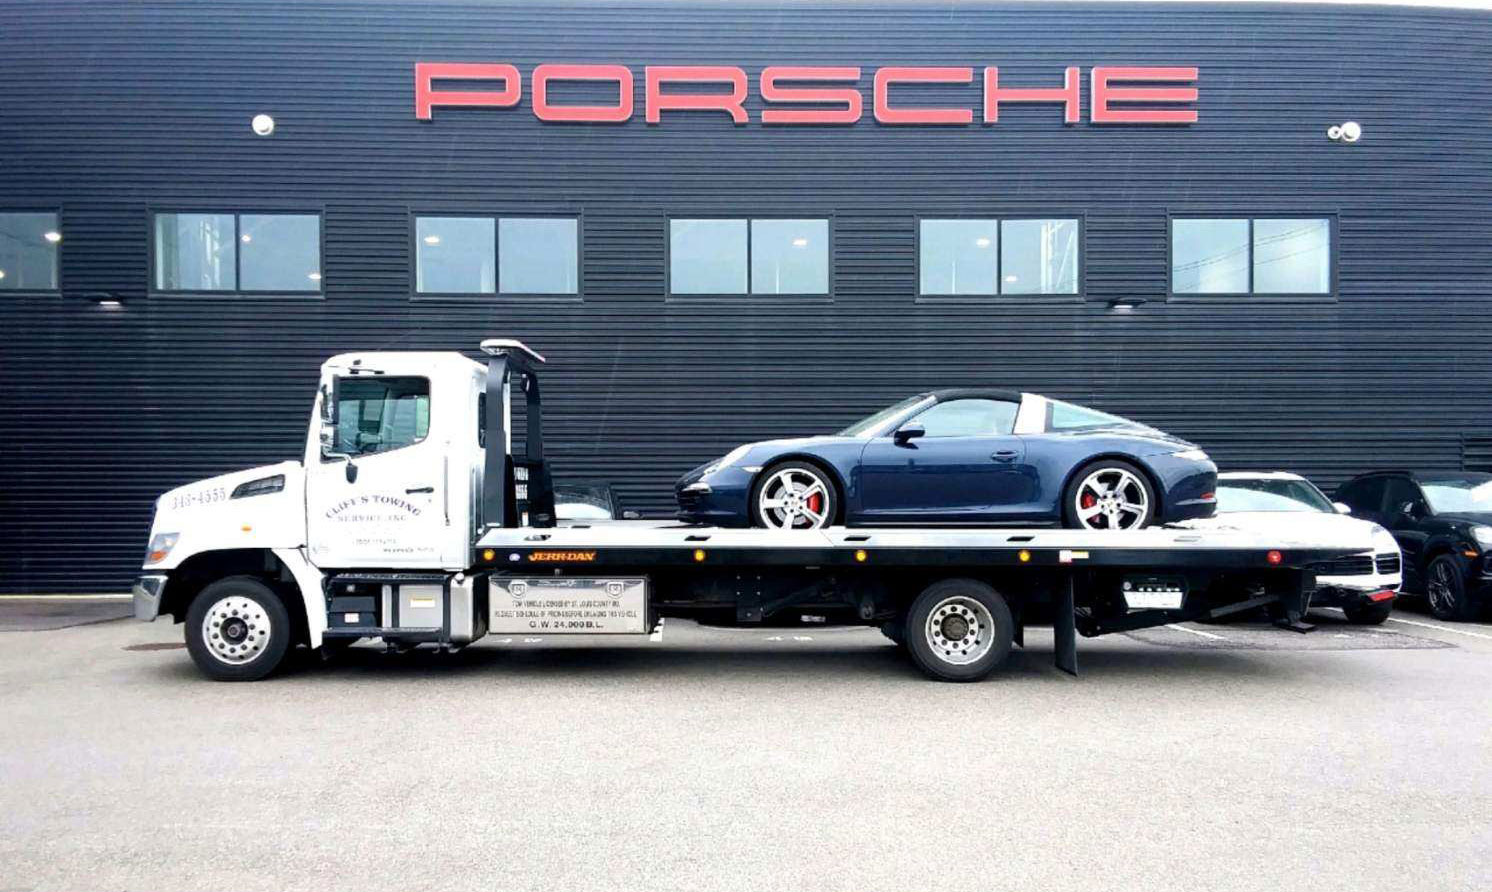 Cliff's Towing Service flat bed truck with 911 Porsche on it in front of St. Louis Porsche dealership